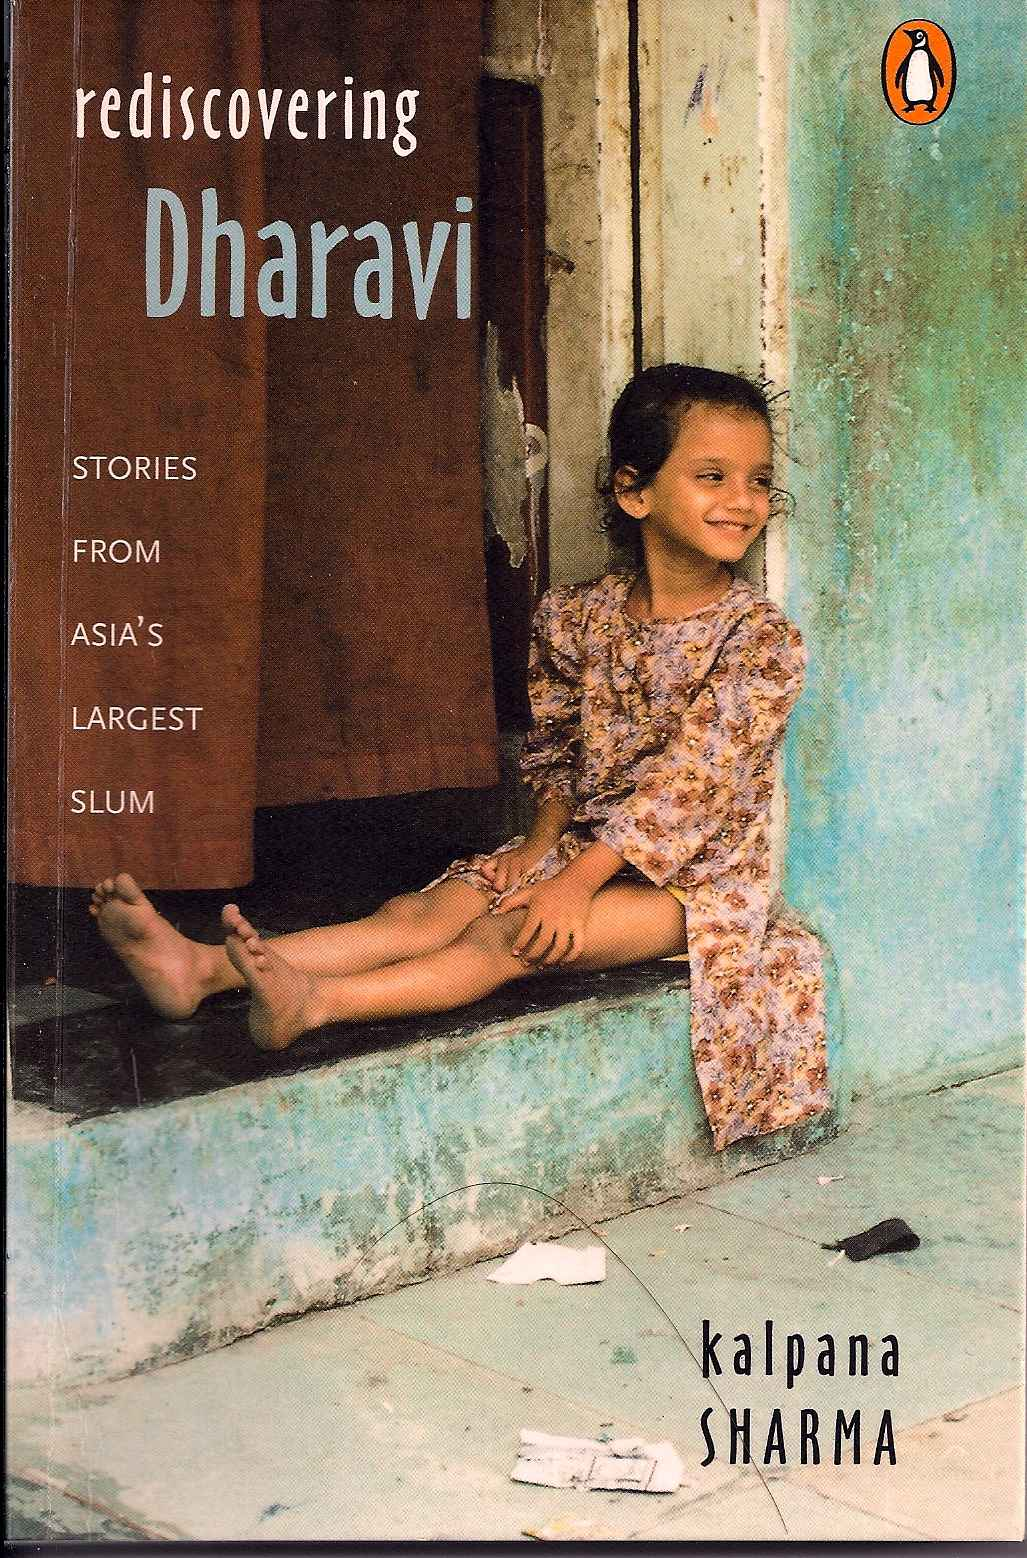 More about Rediscovering Dharavi